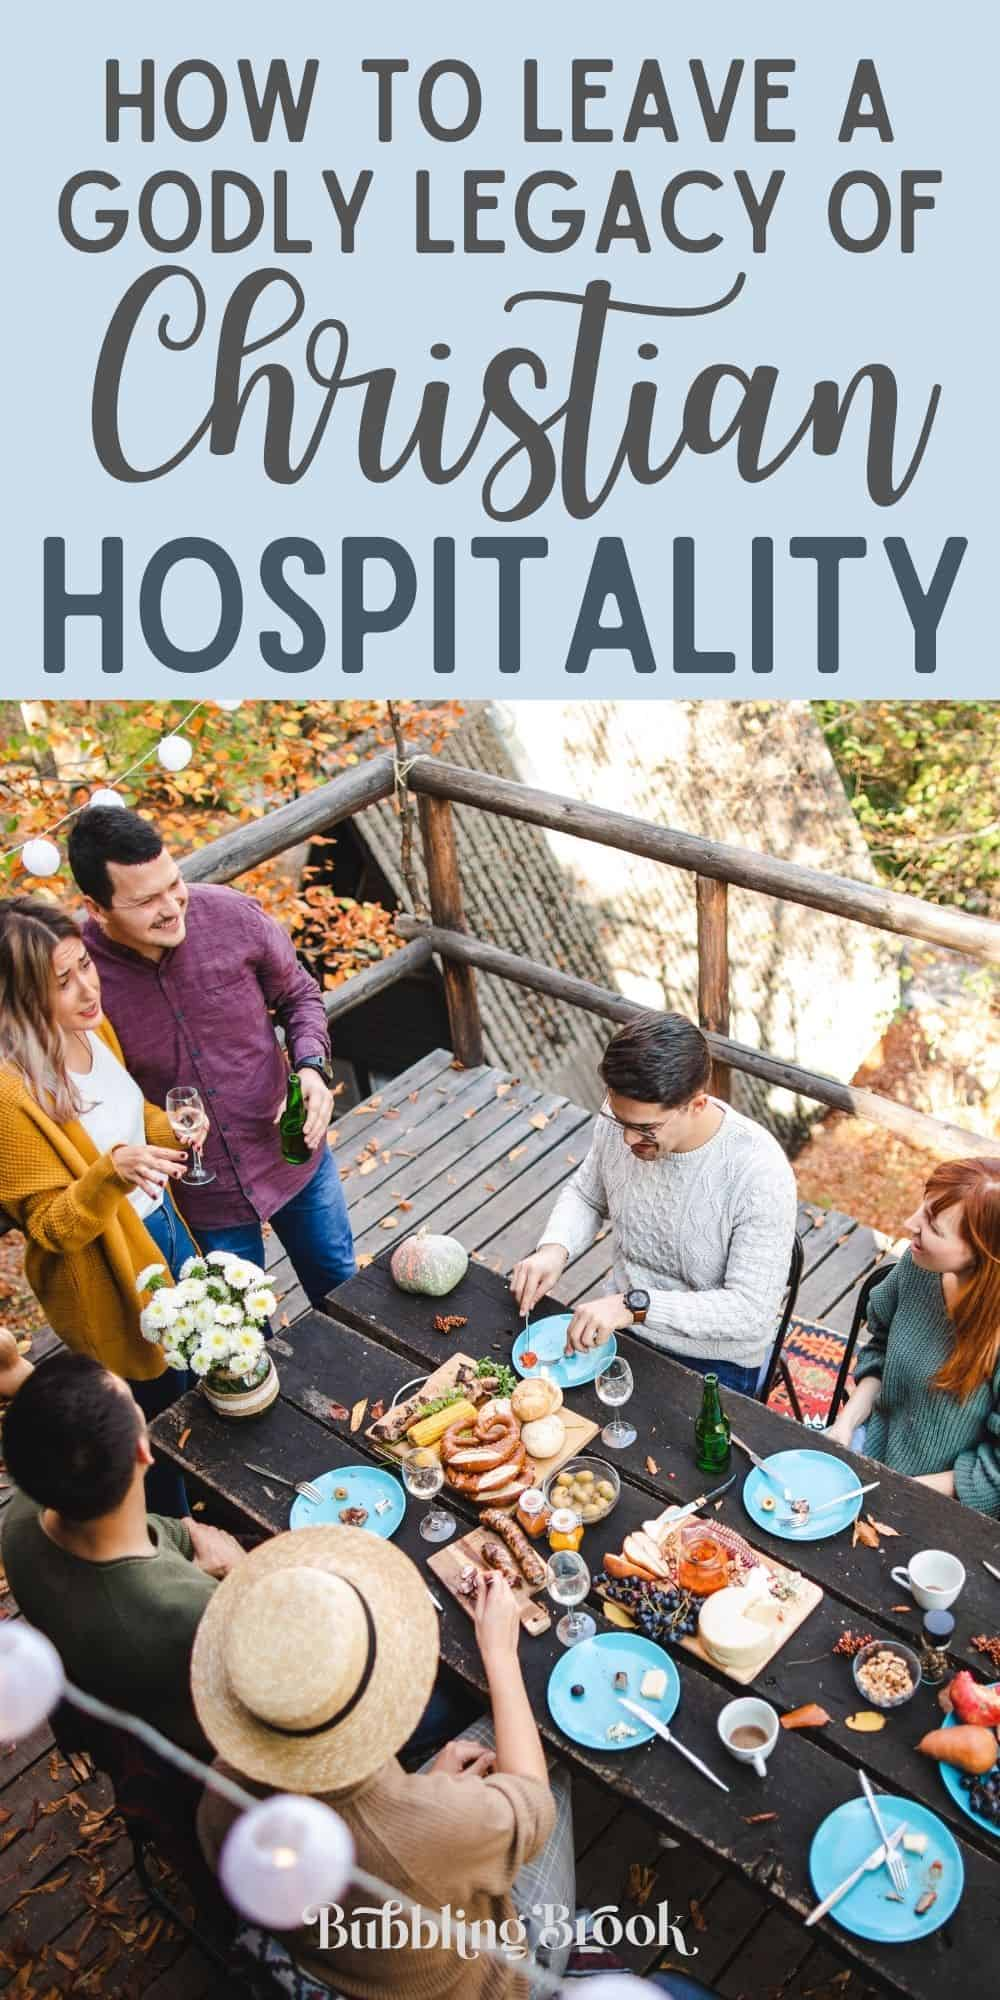 How to leave a godly legacy of christian hospitality